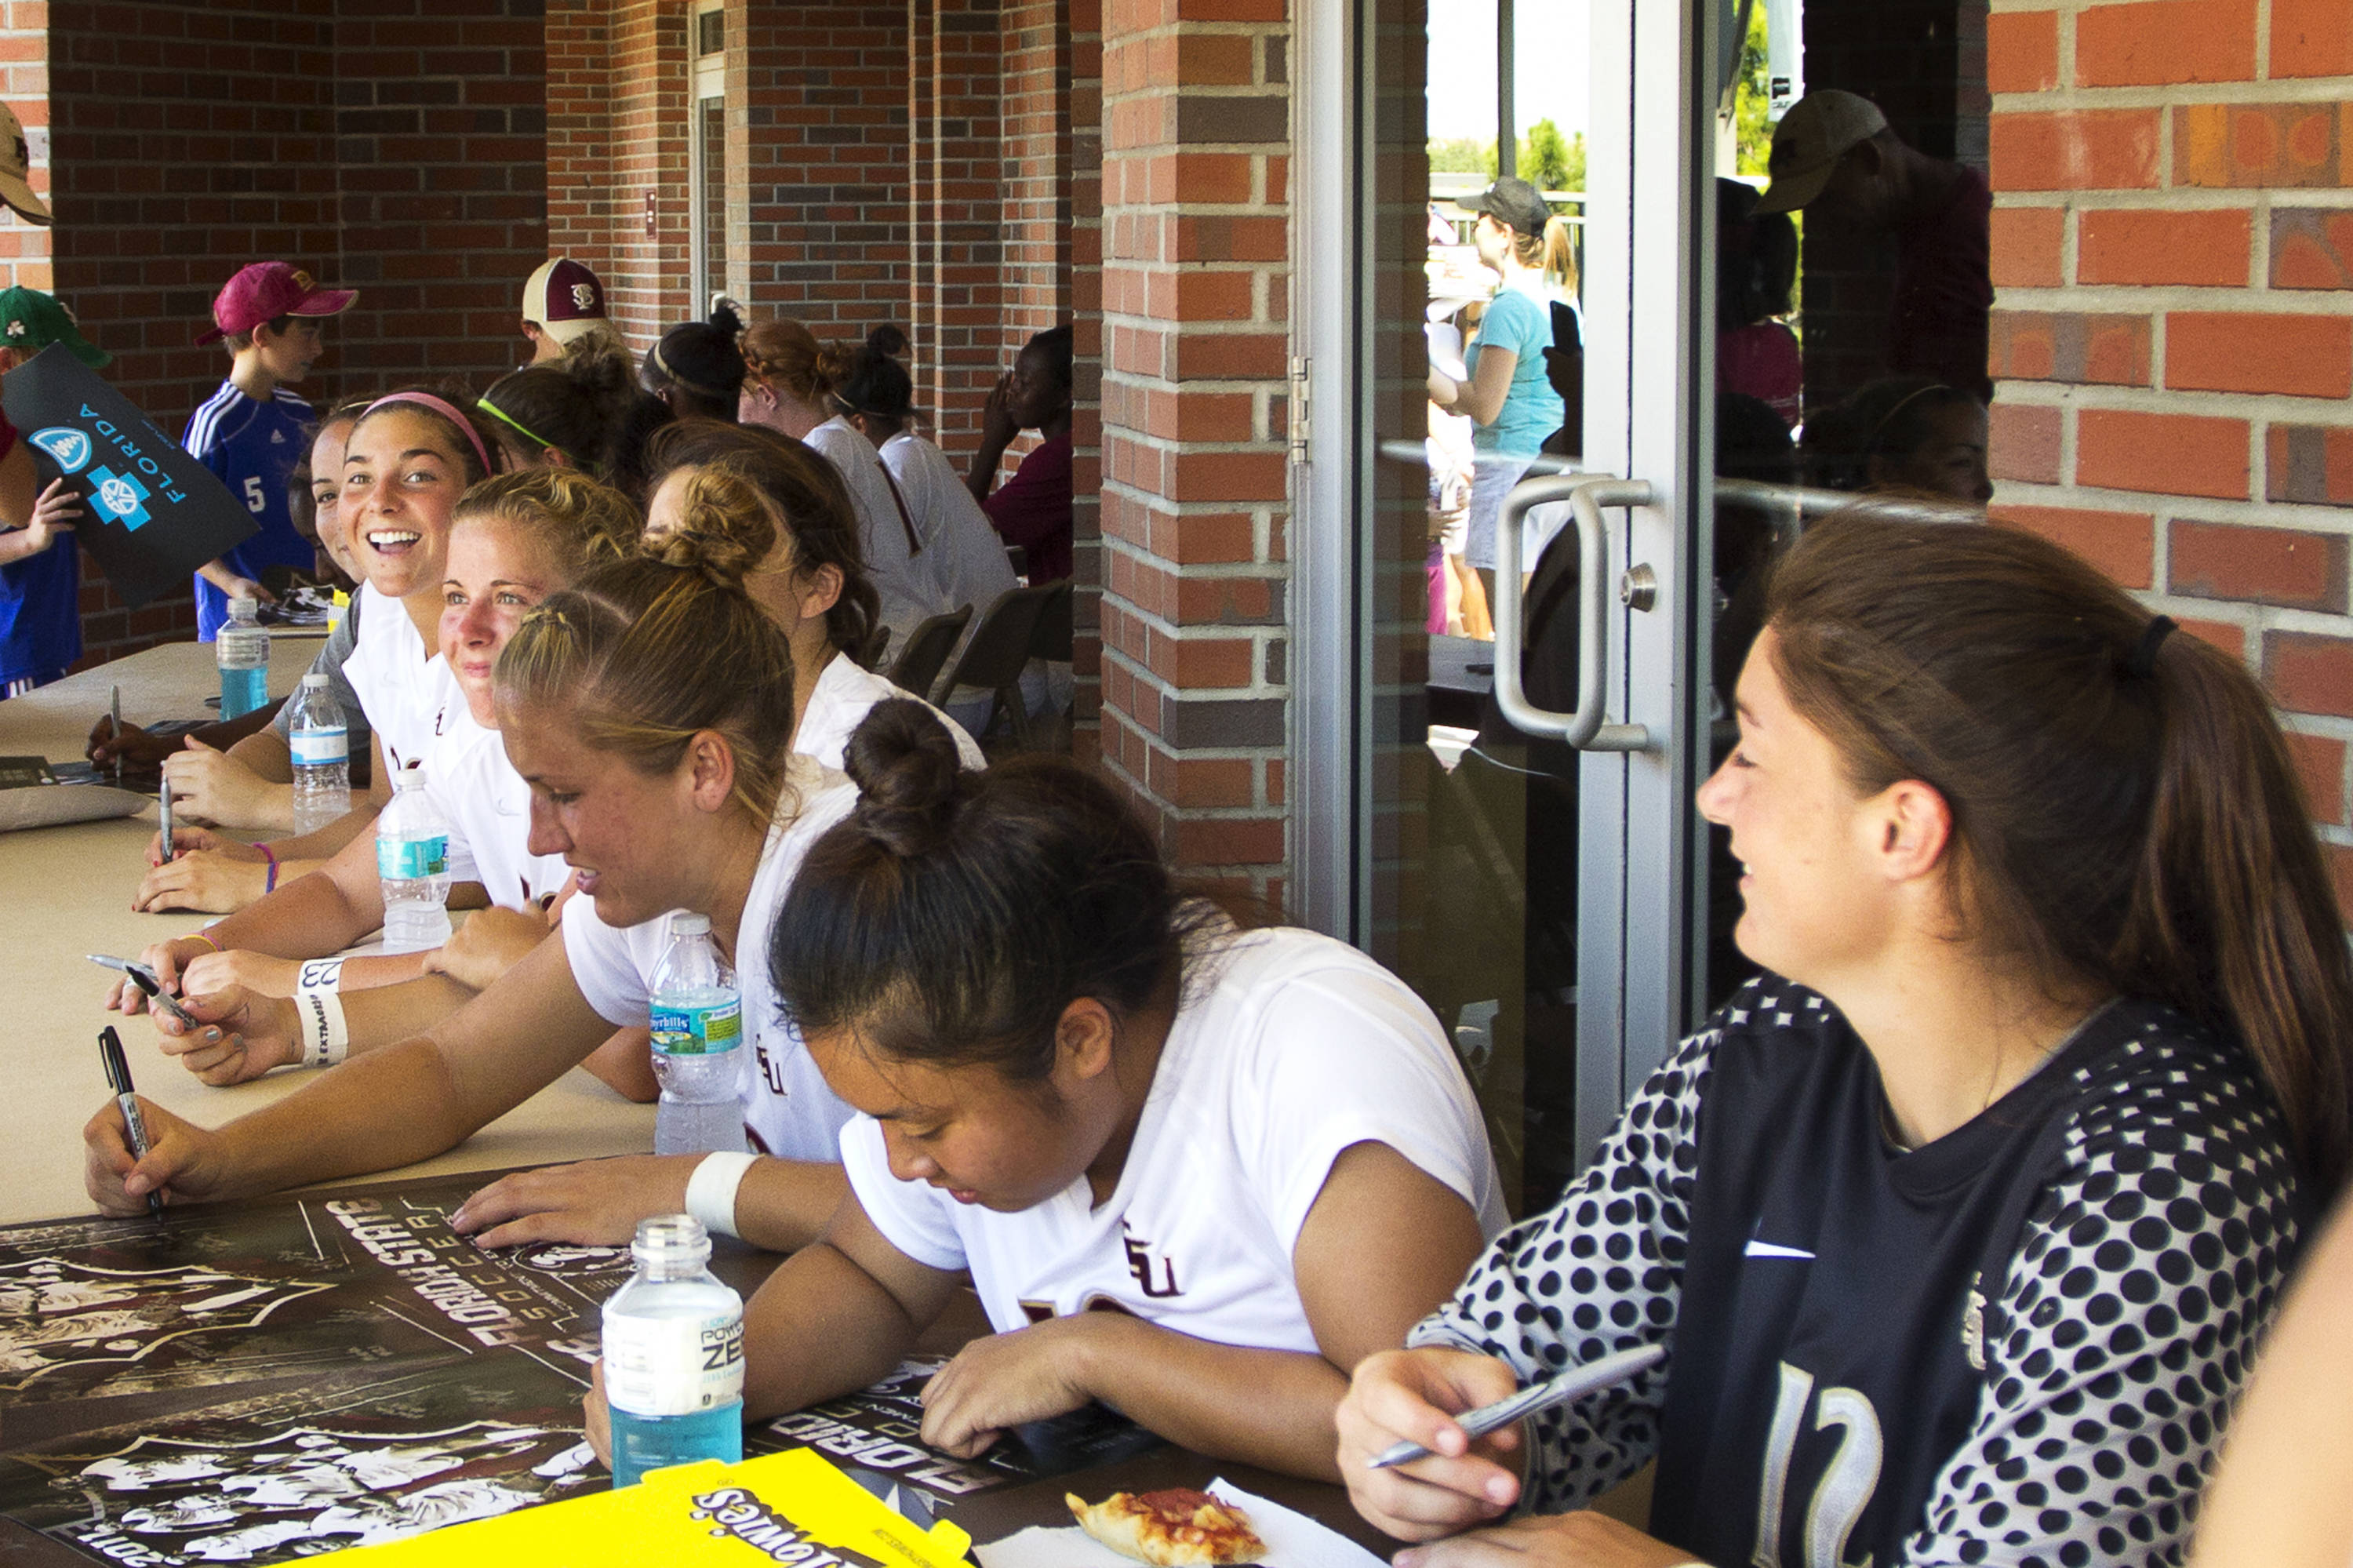 The team autographs posters for fans following the game against North Florida on August 28, 2011.